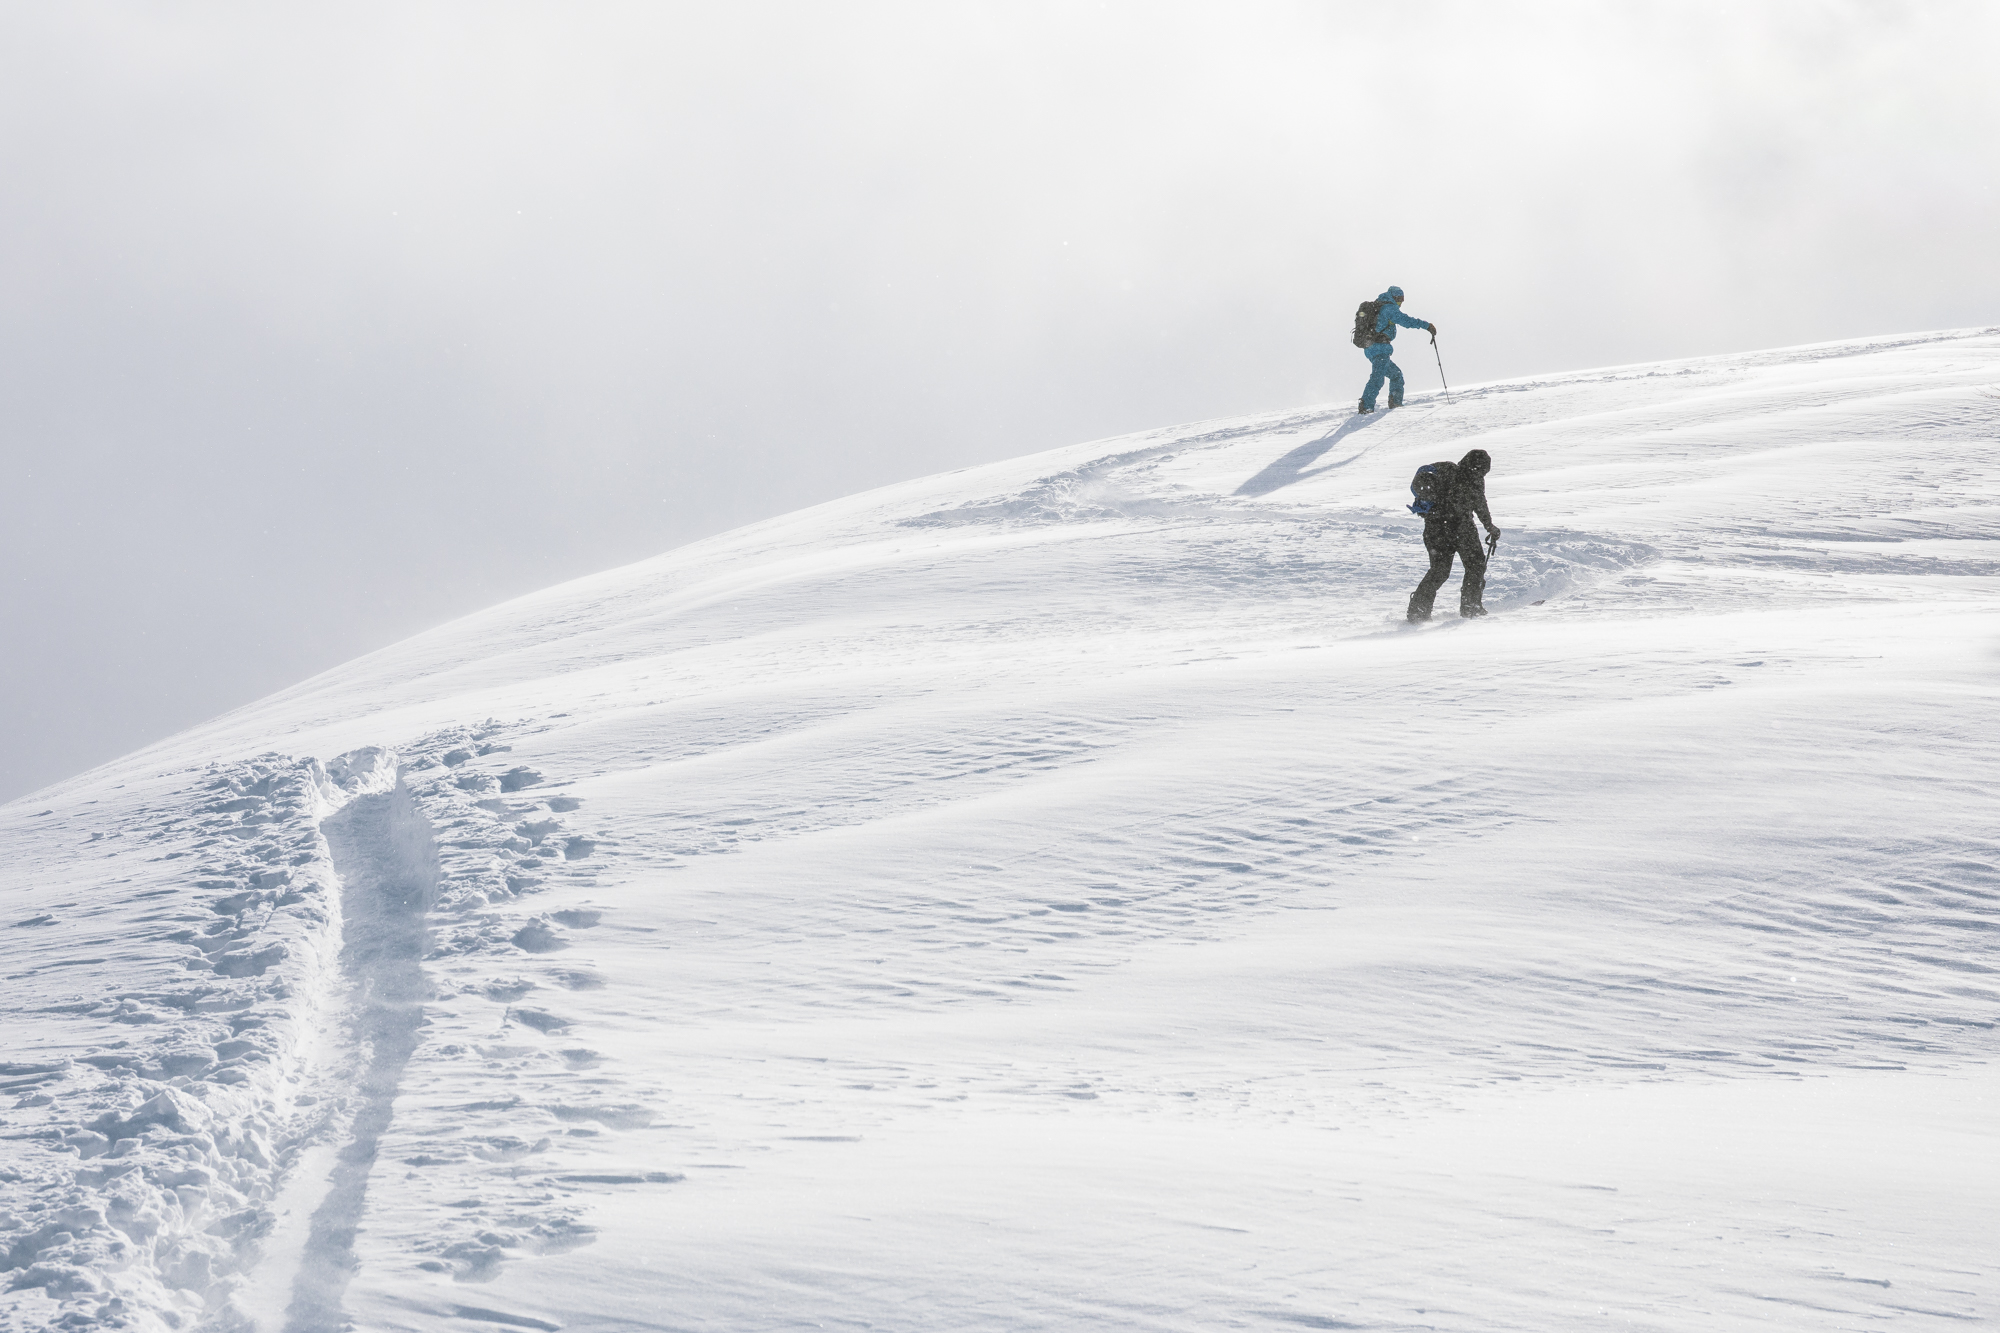 Skinning up to new zones in Japan backcountry. Photo by Ben Girardi.